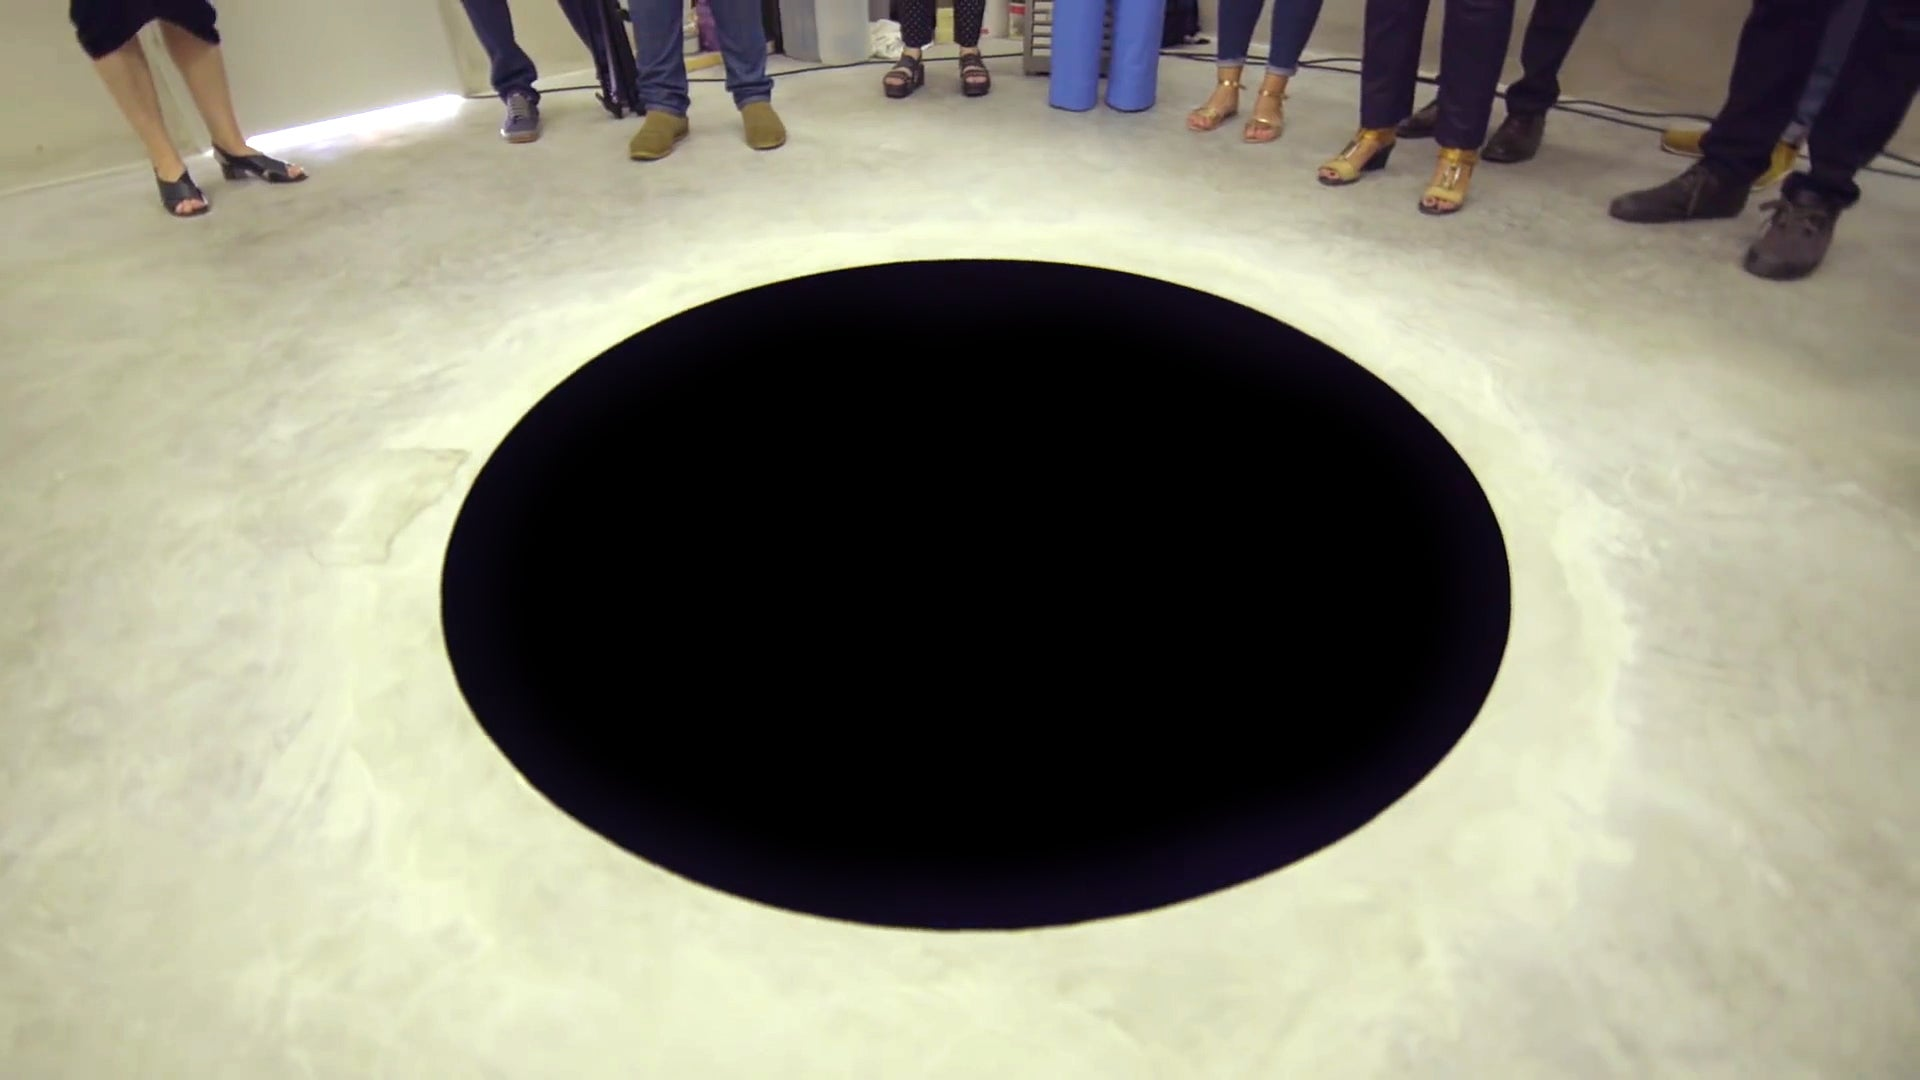 Museum Visitor Falls Into Giant Hole That Looks Like A